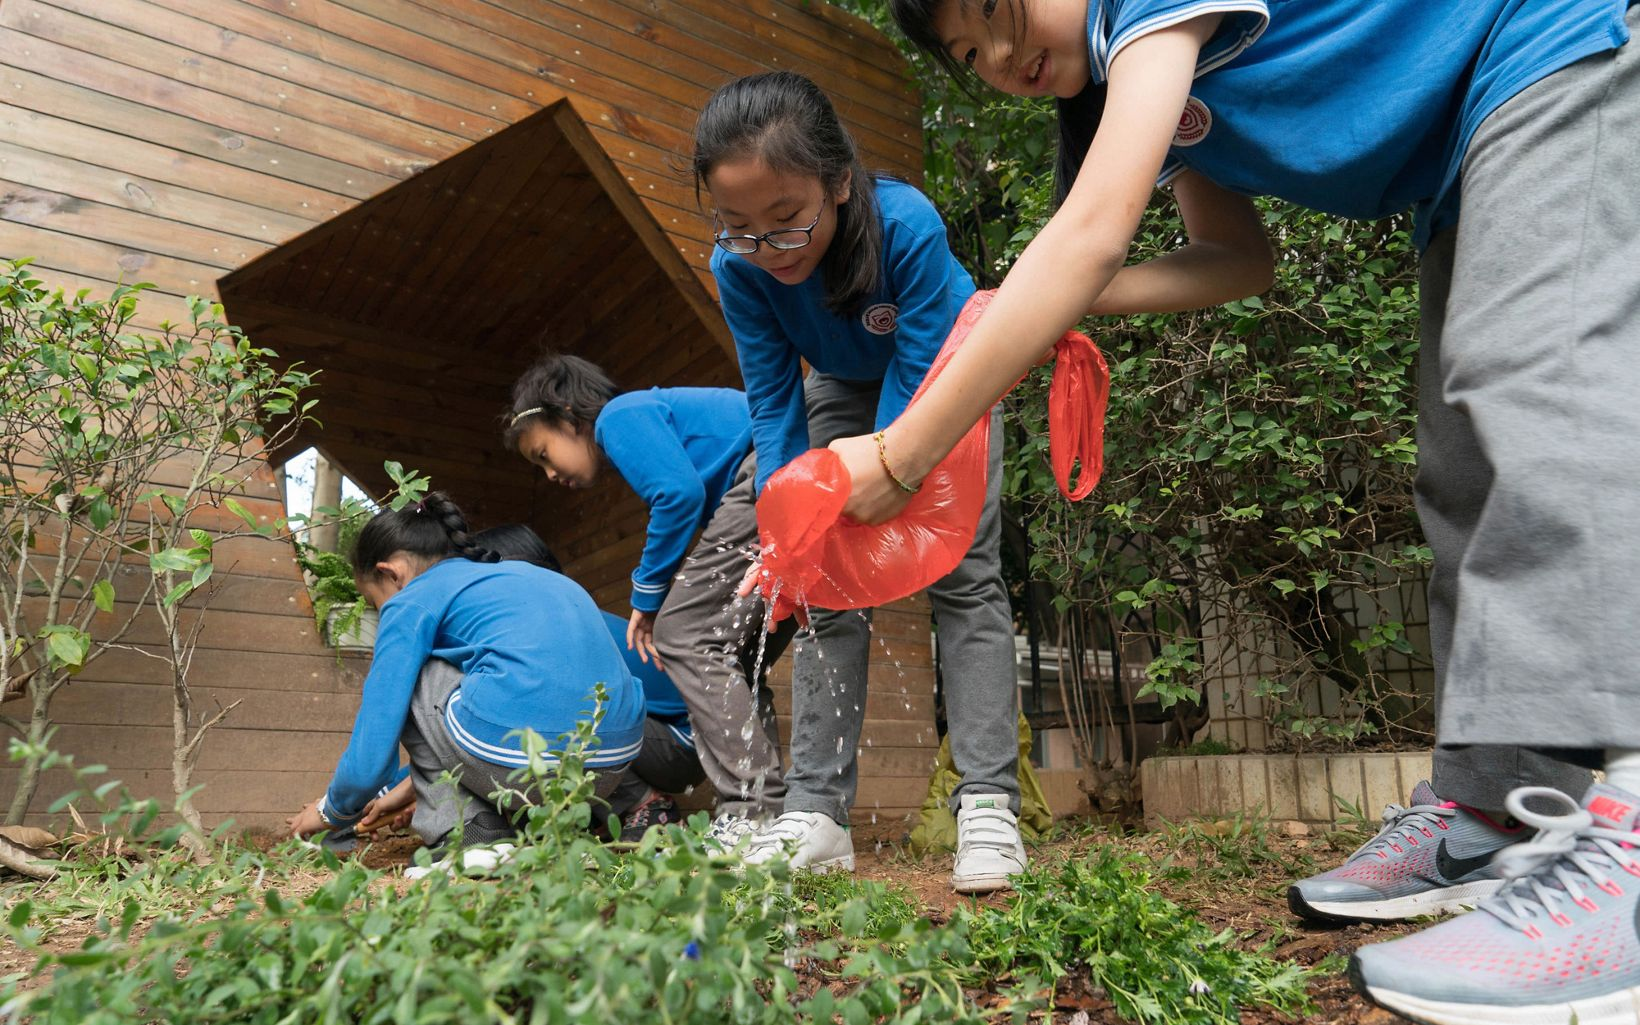 Children gather during a gardening activity at the Sinolink Primary School in Shenzhen, China. November 2017. The Sinolink Primary School in Shenzhen has implemented a number of sponge city features including permeable surfaces in their sports grounds and entrance walking areas, added rain barrels, and started a 'young naturalists' class that also teaches students about rainwater management and related gardening. The school is located in Luohu district, Shenzhen, China. TNC's Build Healthy Cities Program.